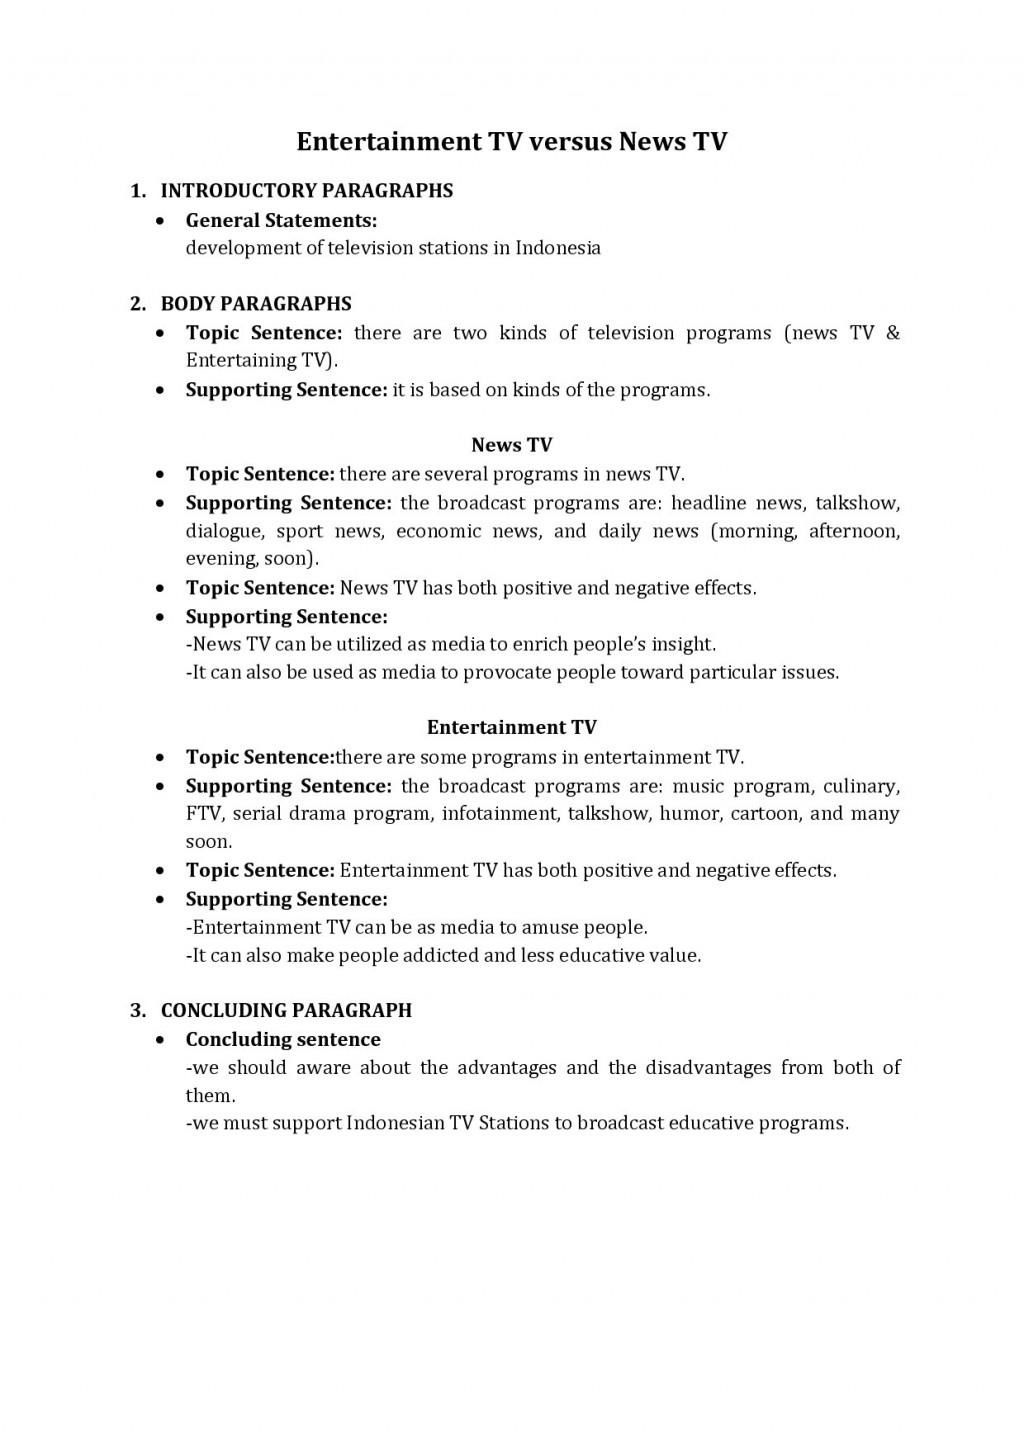 015 Essay Example College Format Examples World Of Throughout Paper Outline S Sample Template Css Pdf Layout Compare And Contrast Fearsome Research In Apa Informative Argumentative Large